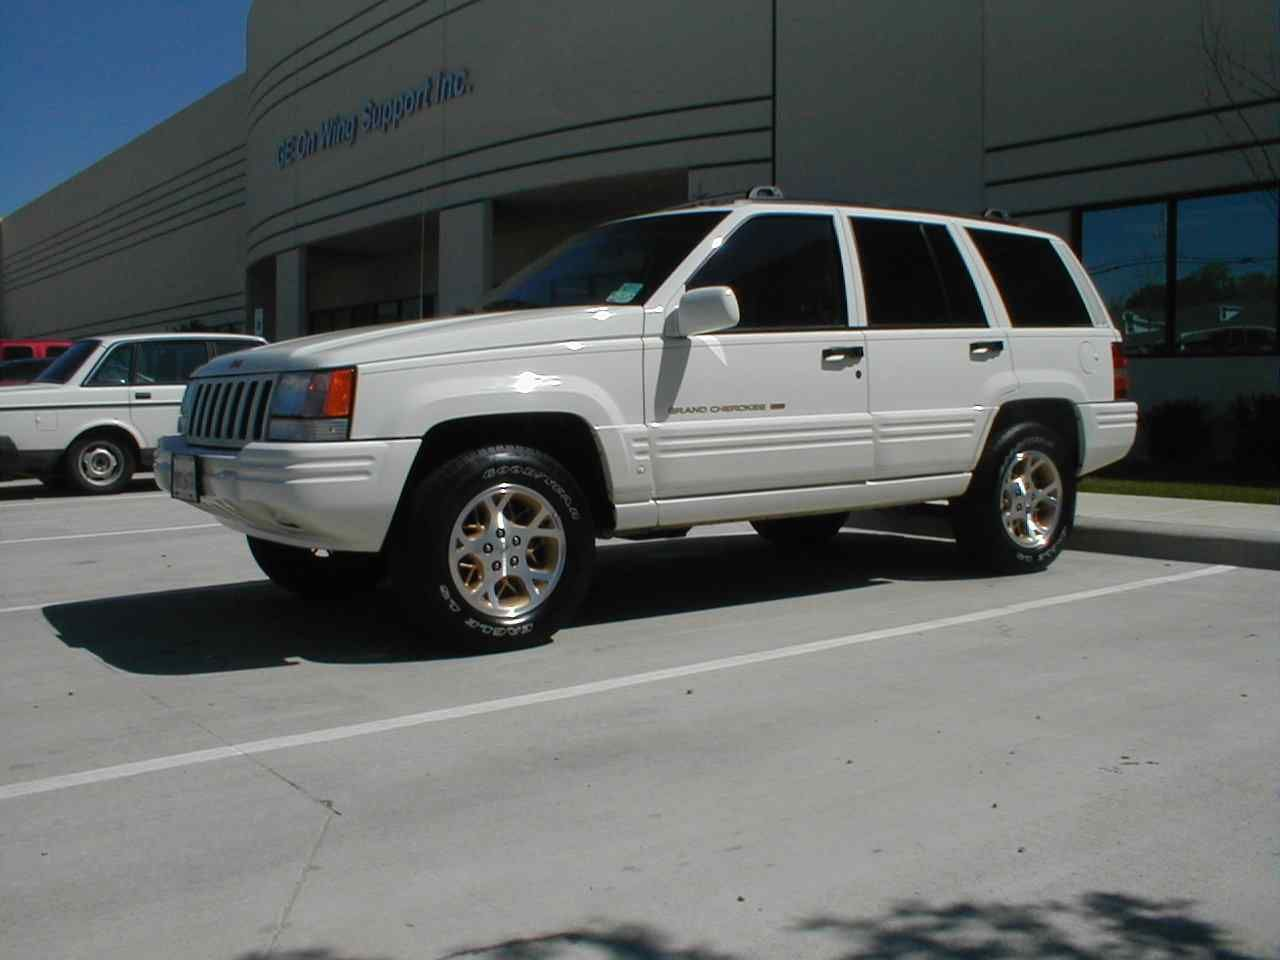 1996 jeep grand cherokee (white), just bought one of these. going